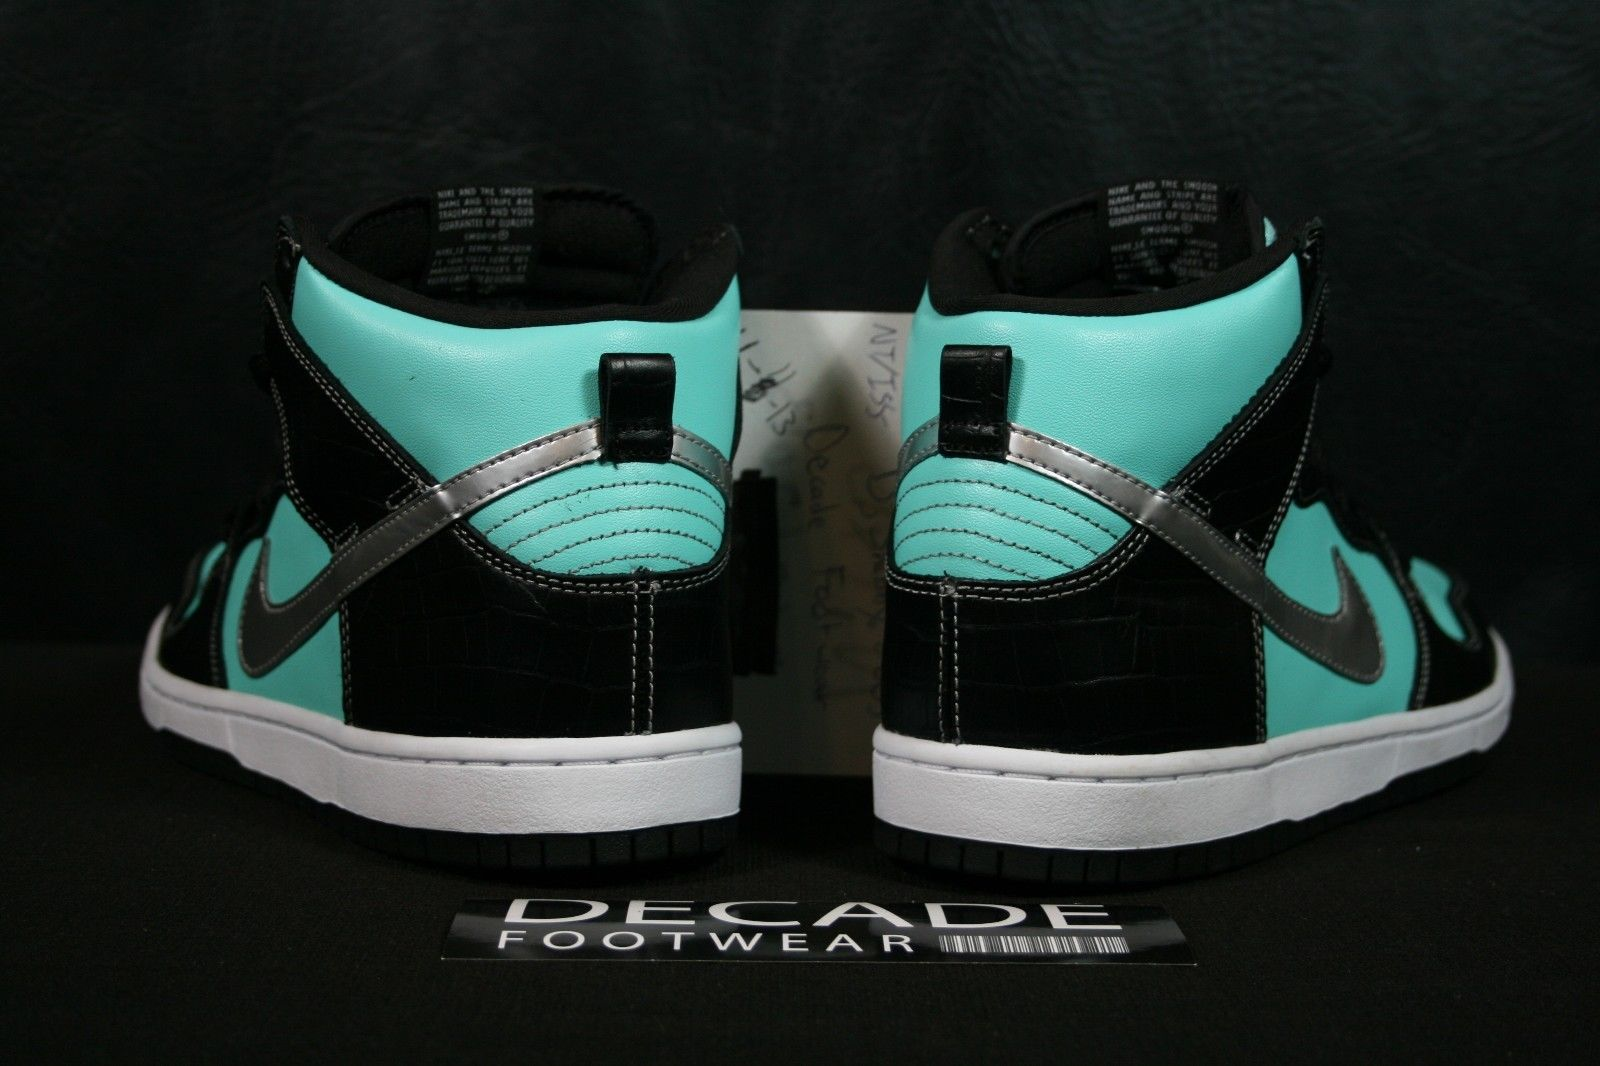 sports shoes 37da1 caef0 Contact. The Place Investment Group Inc. nike sb dunk high diamond